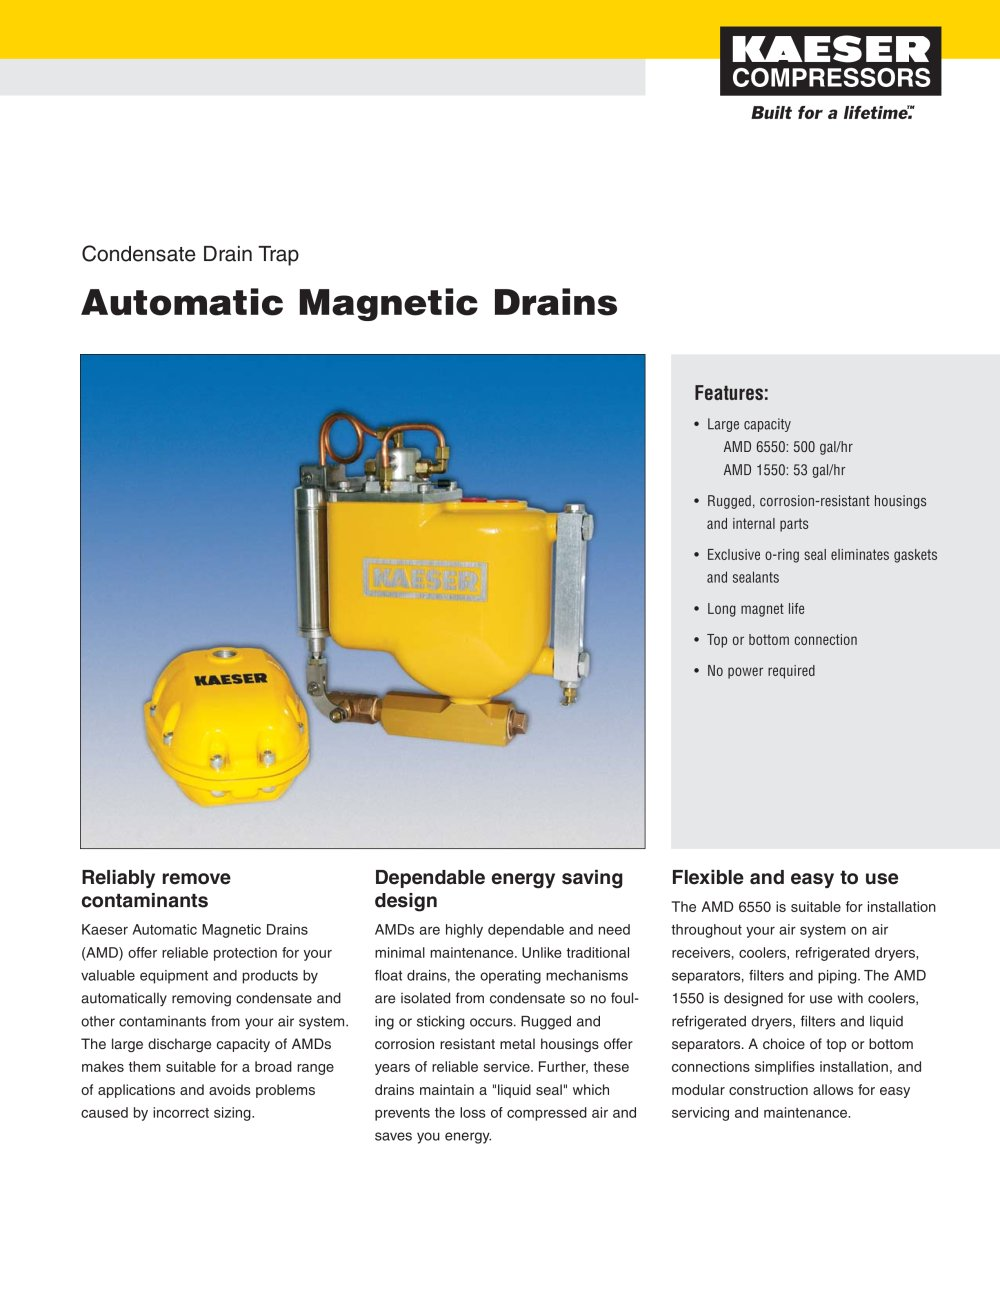 Automatic Magnetic Drain - 1 / 2 Pages